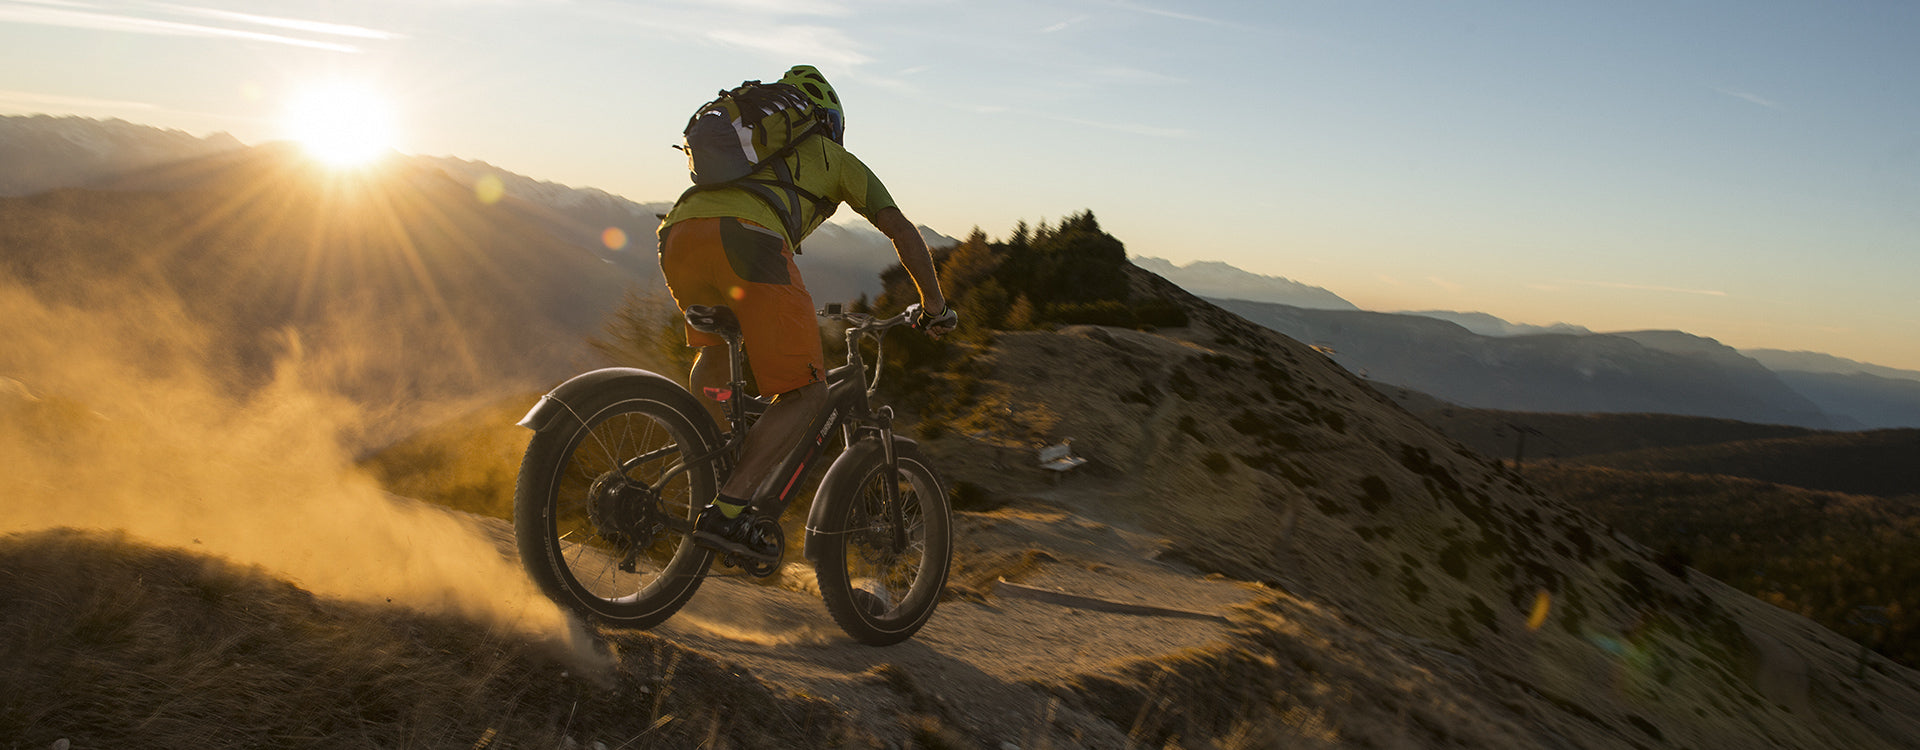 Turboant T1/N1 Fat Tire Electric Bike for commute